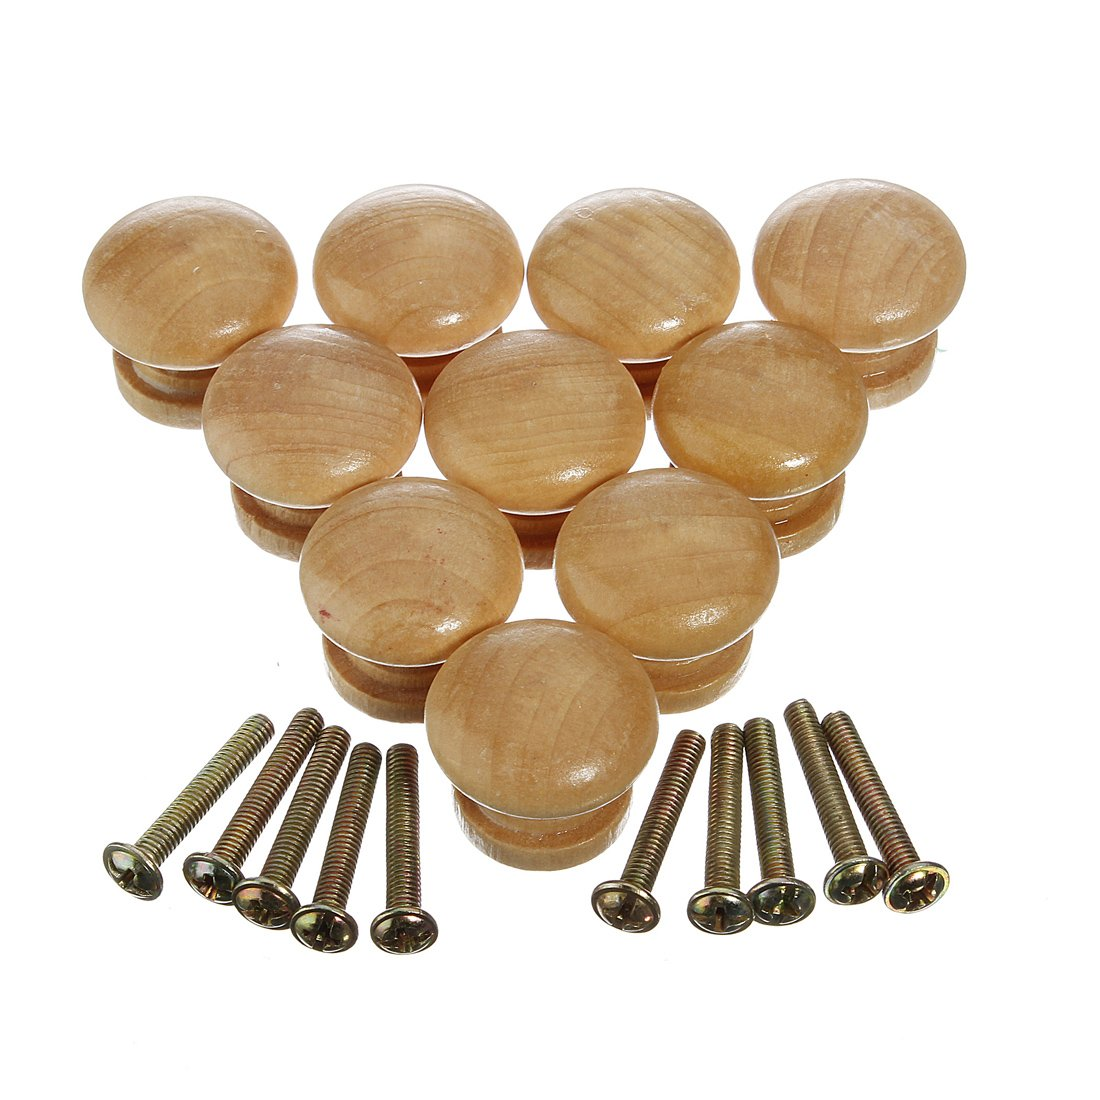 10Pcs Wood Pull Handle Cabinet Drawer Knob Kitchen Plain Door ...